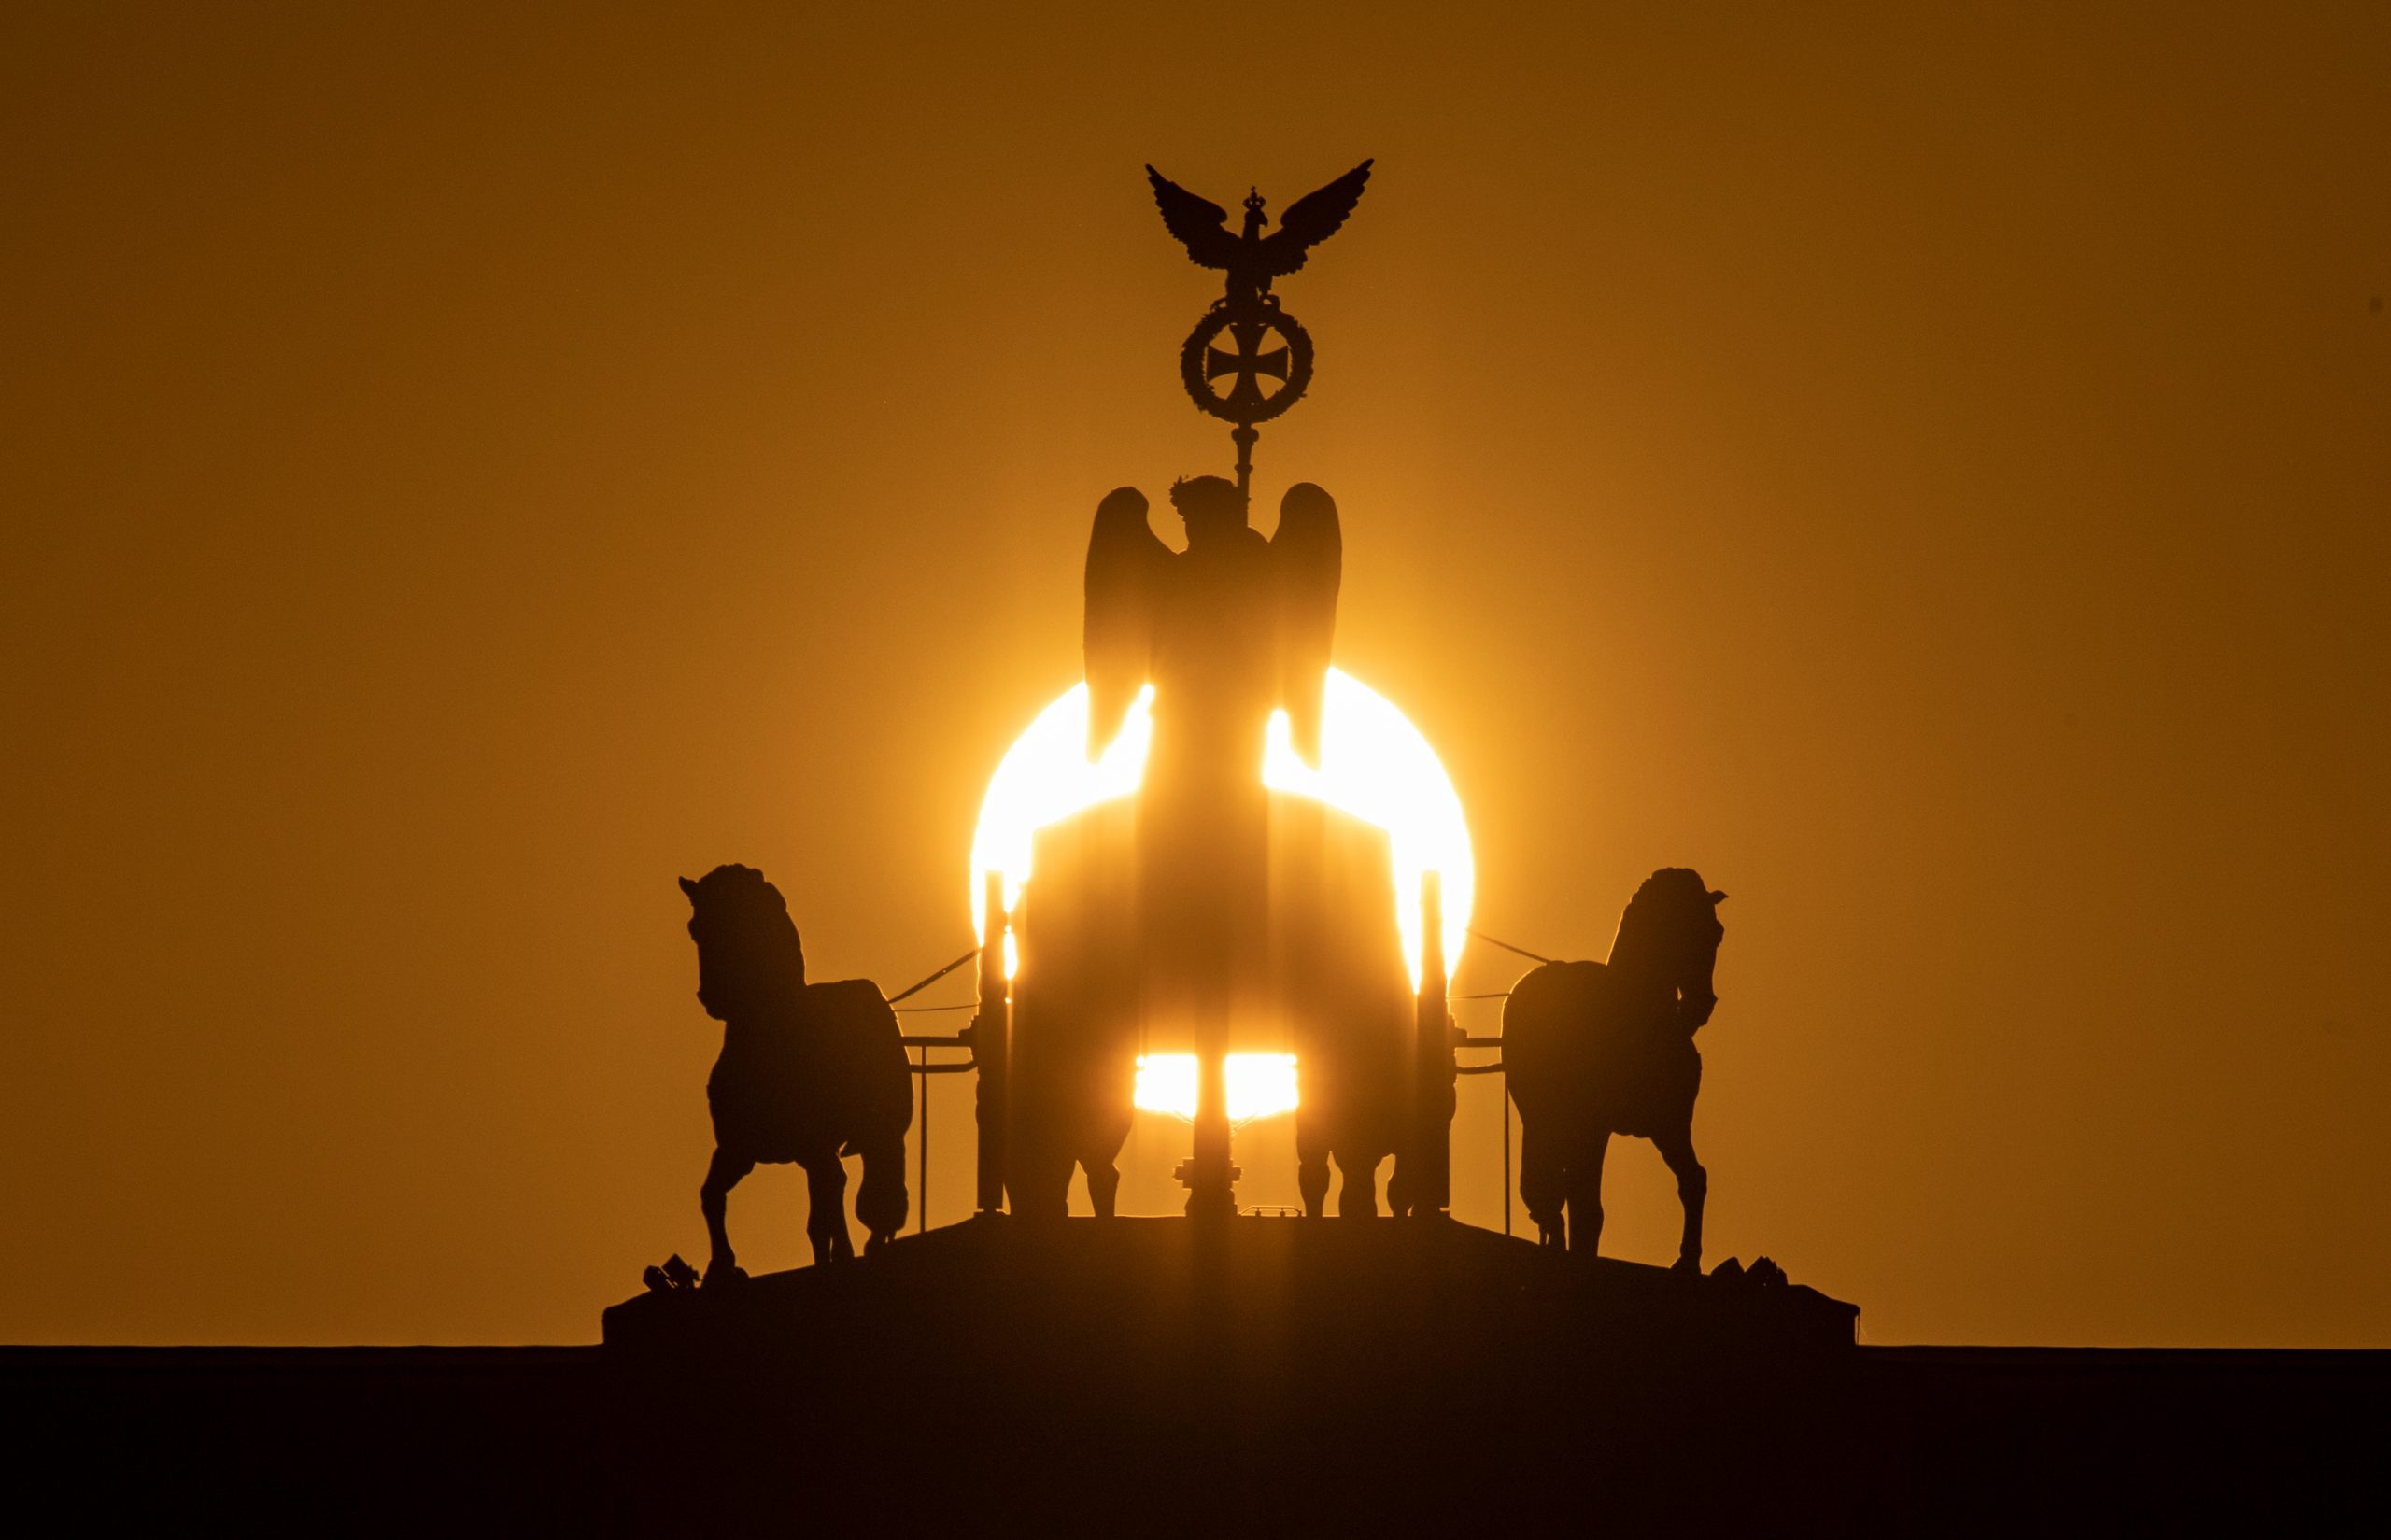 Sonnenaufgang am Brandenburger Tor.